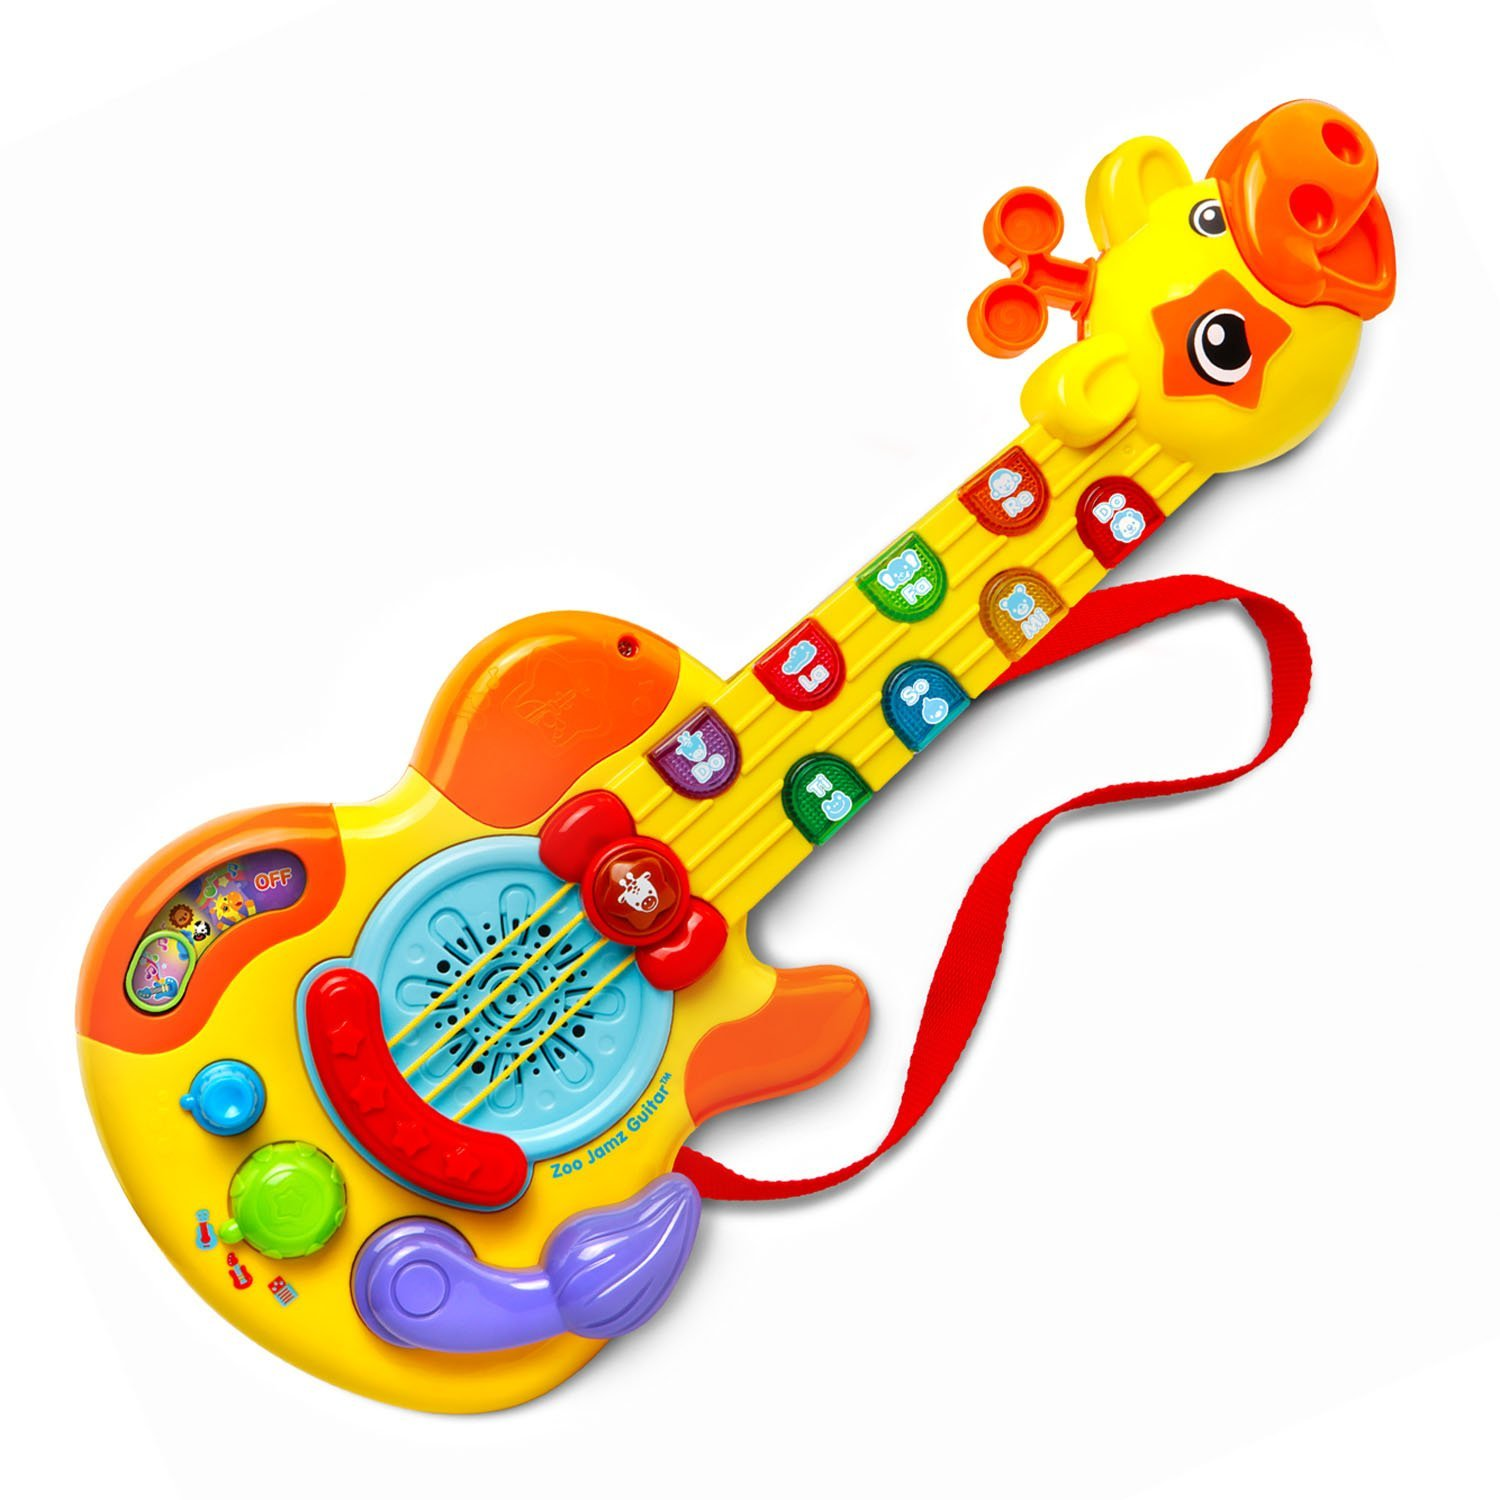 Awesome Musical Toys For 2 Year Olds In 2017